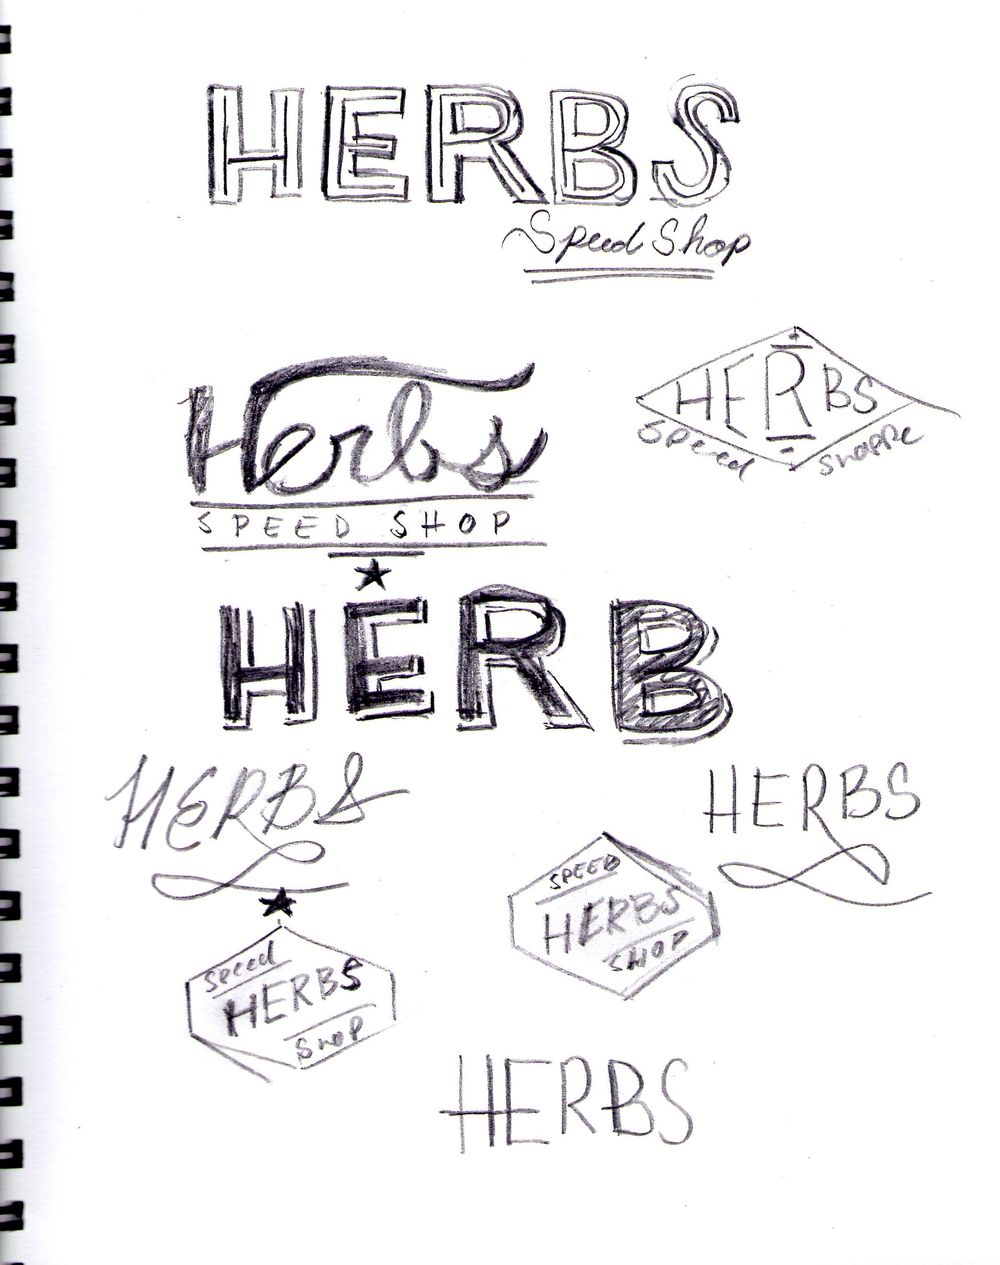 Herbs Speed Shop - The start of a passion project  - image 3 - student project